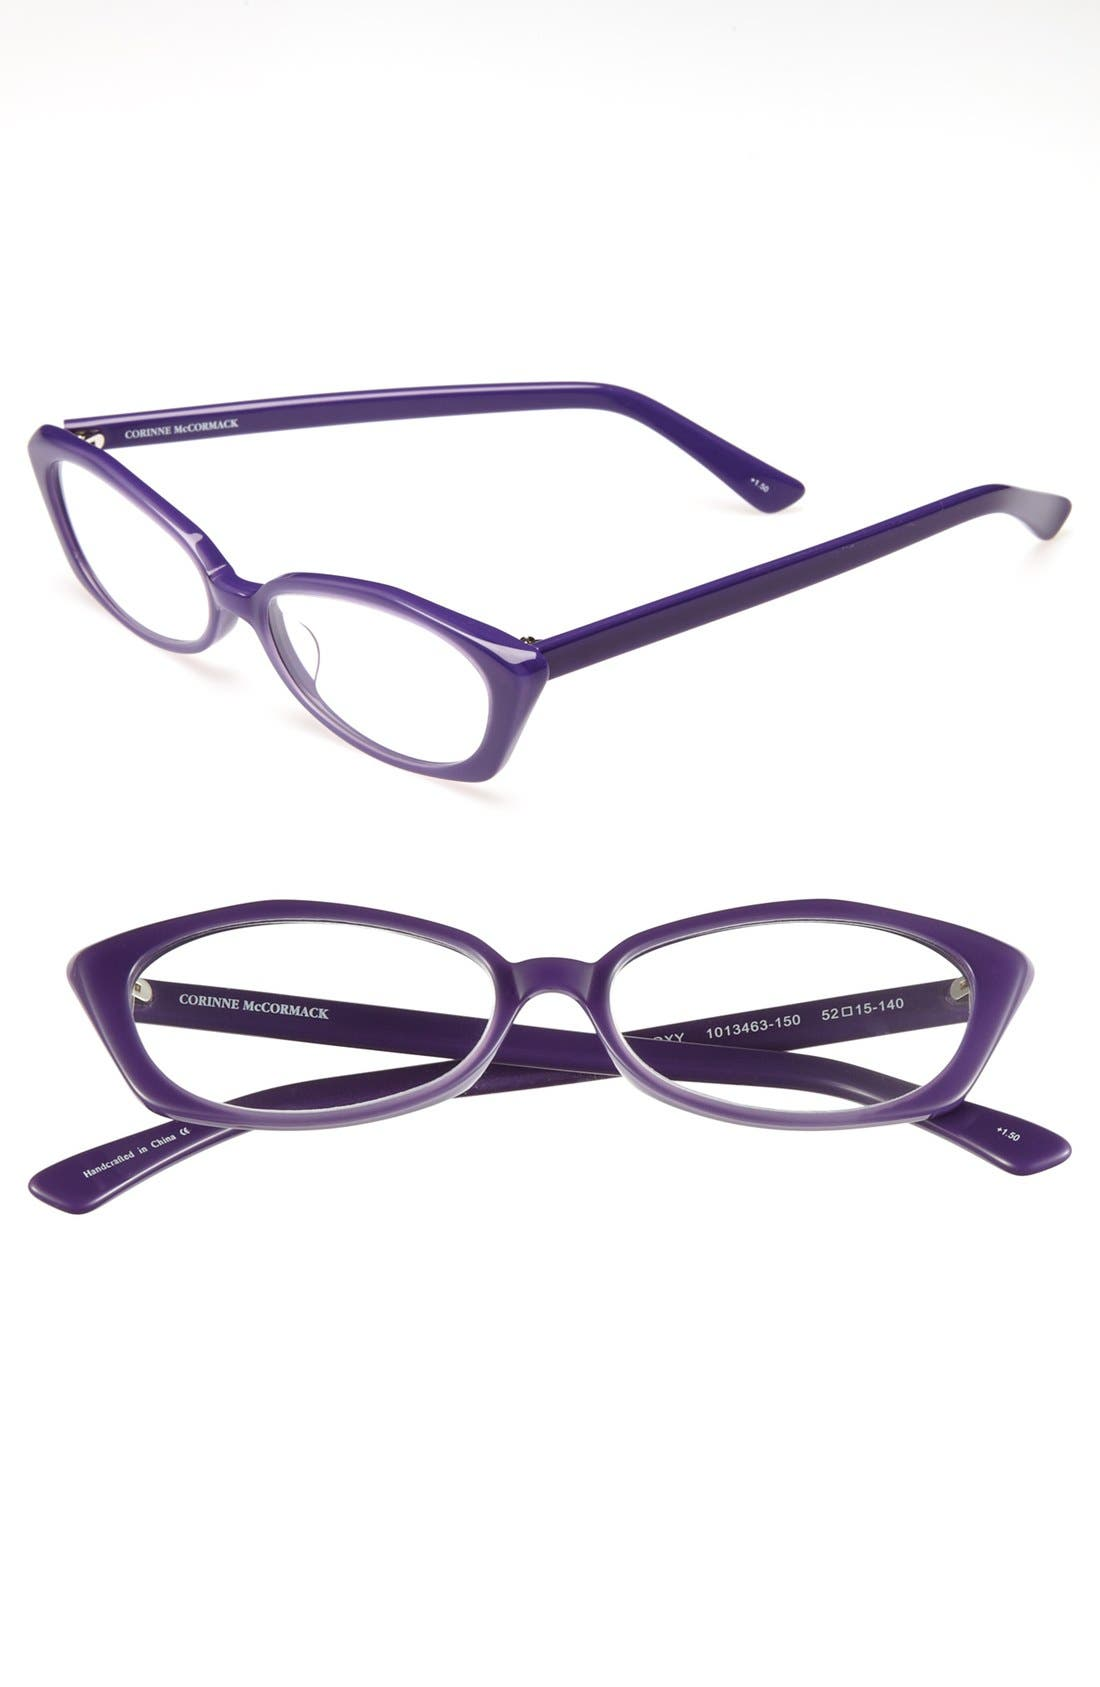 Alternate Image 1 Selected - Corinne McCormack 'Roxy' 52mm Reading Glasses (2 for $88)